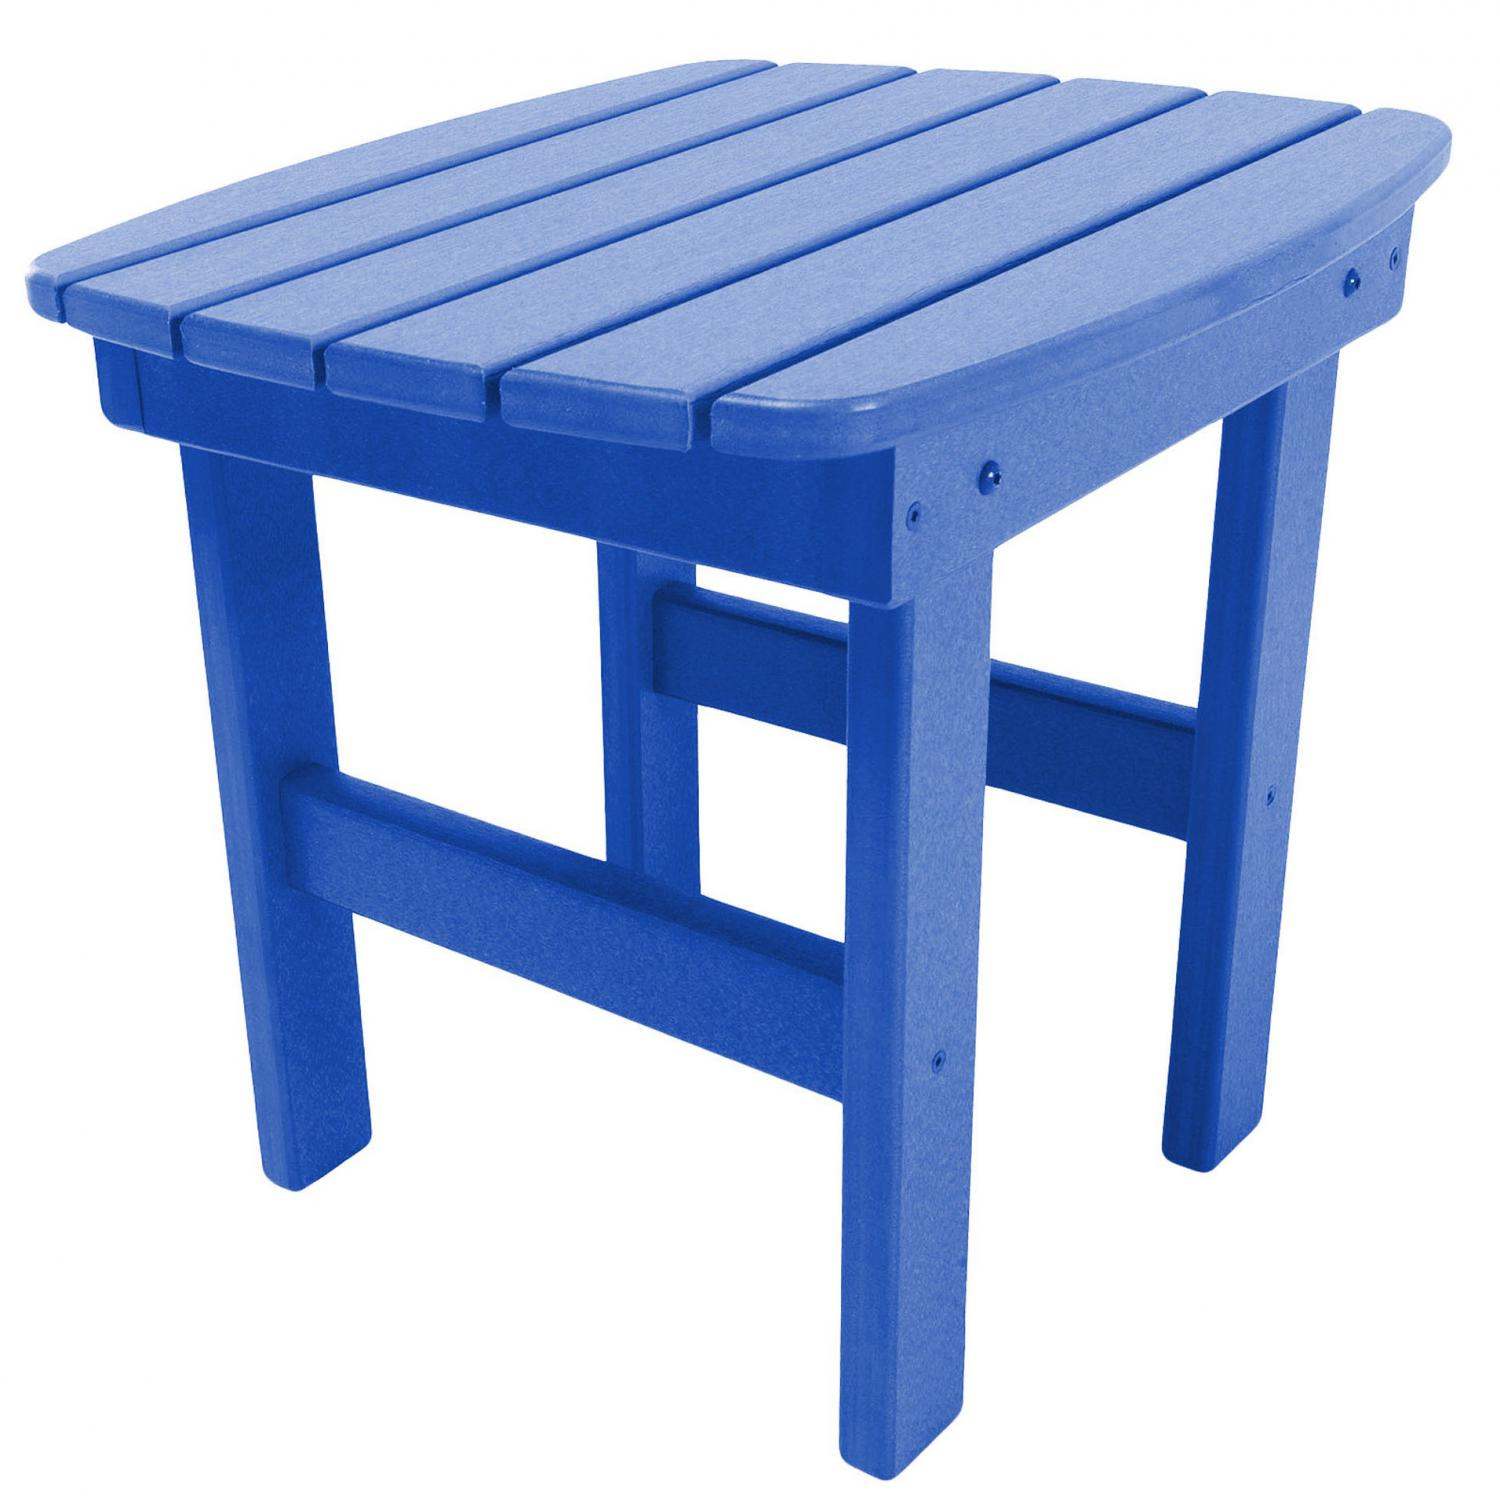 pawleys island poly lumber patio side table blue bbq guys outdoor for drop leaf dinette sets asian porcelain lamps dekor home round red tablecloth canadian tire metal accent two